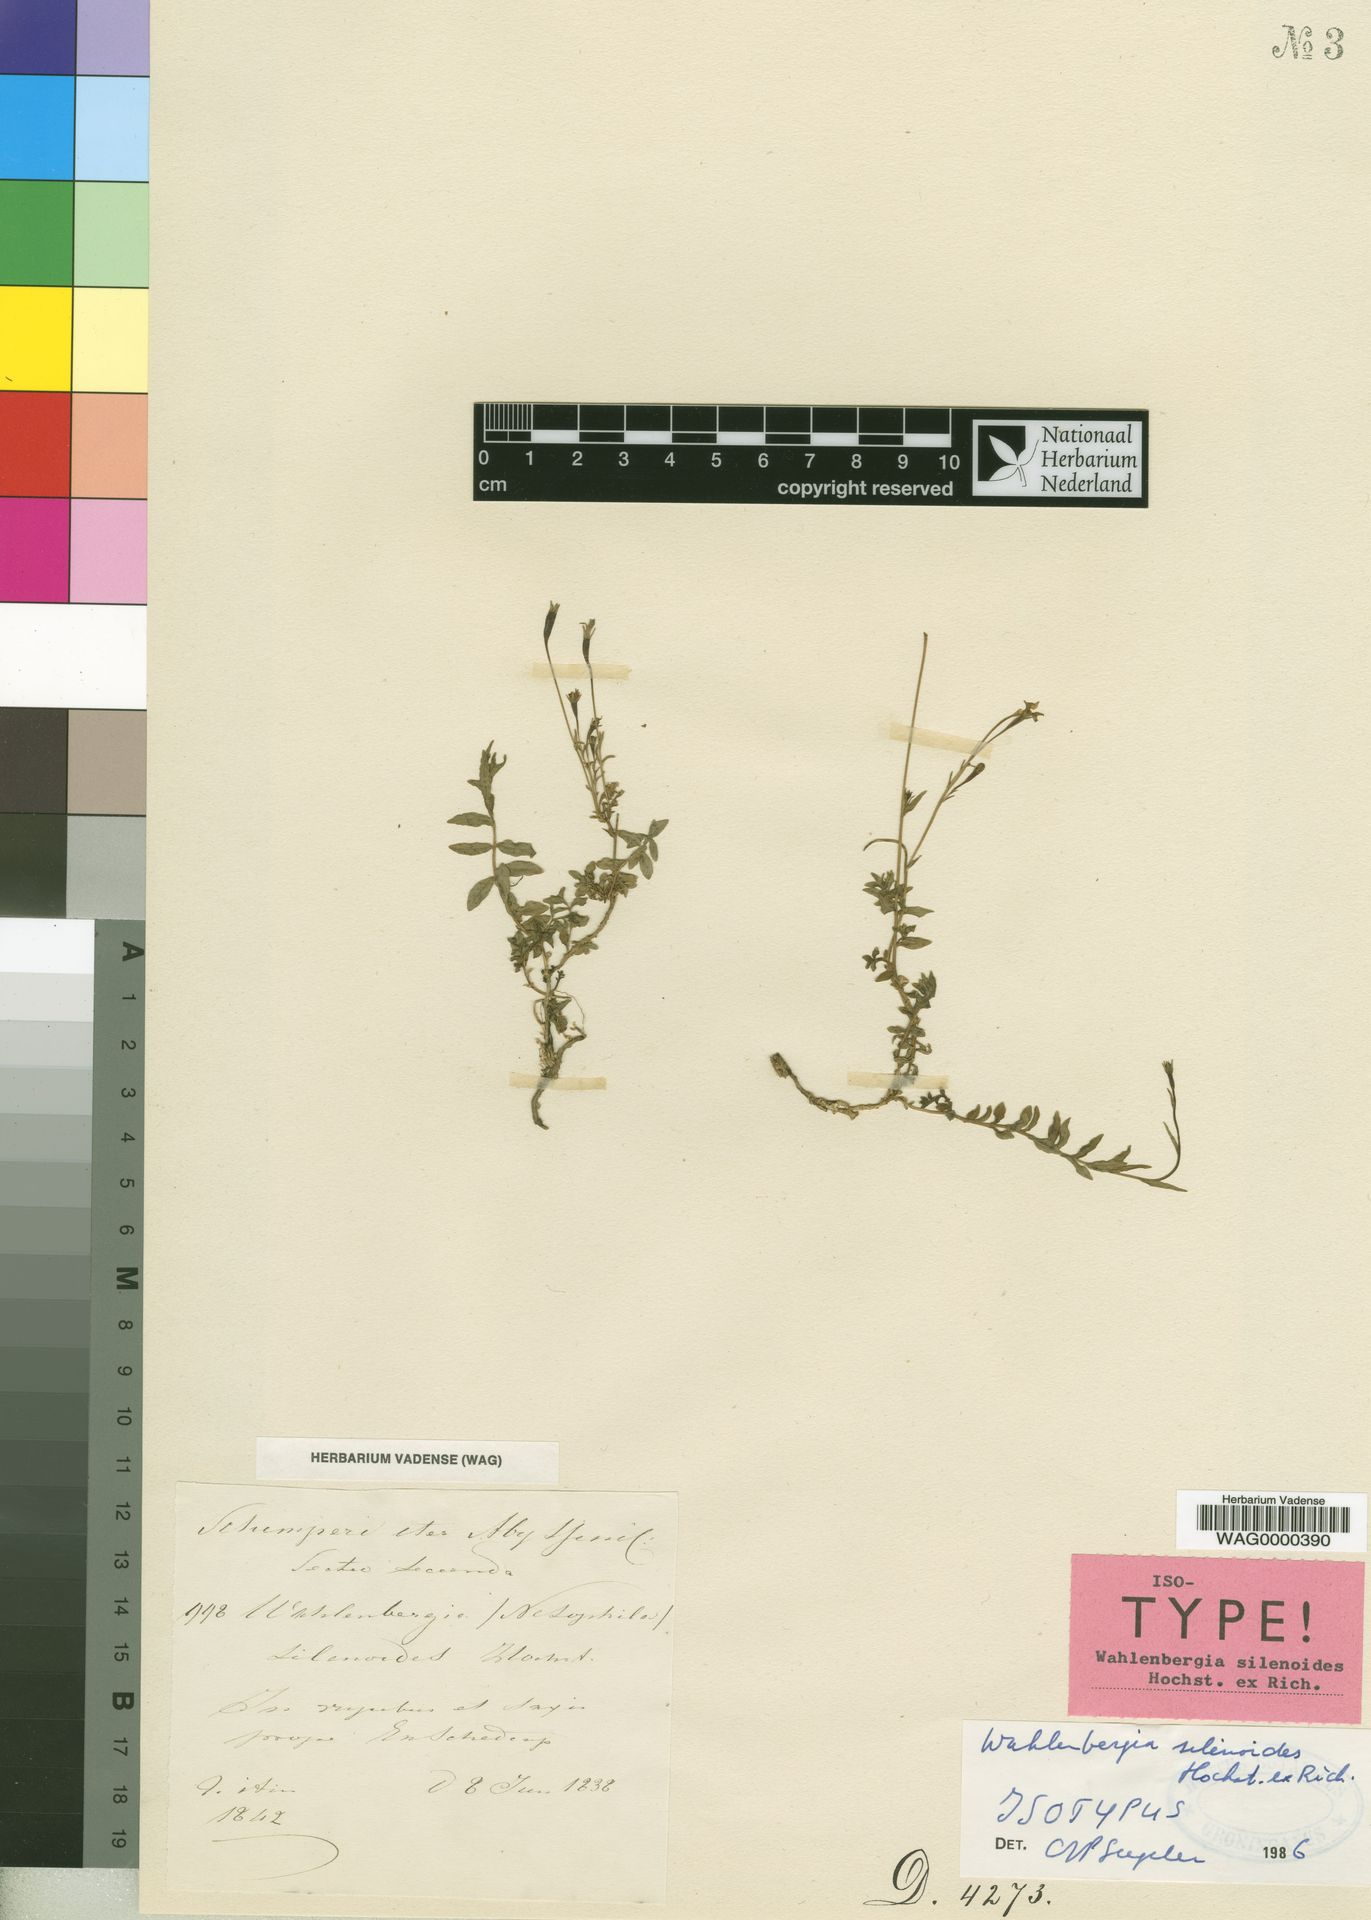 WAG0000390 | Cyperus fissus Steud.